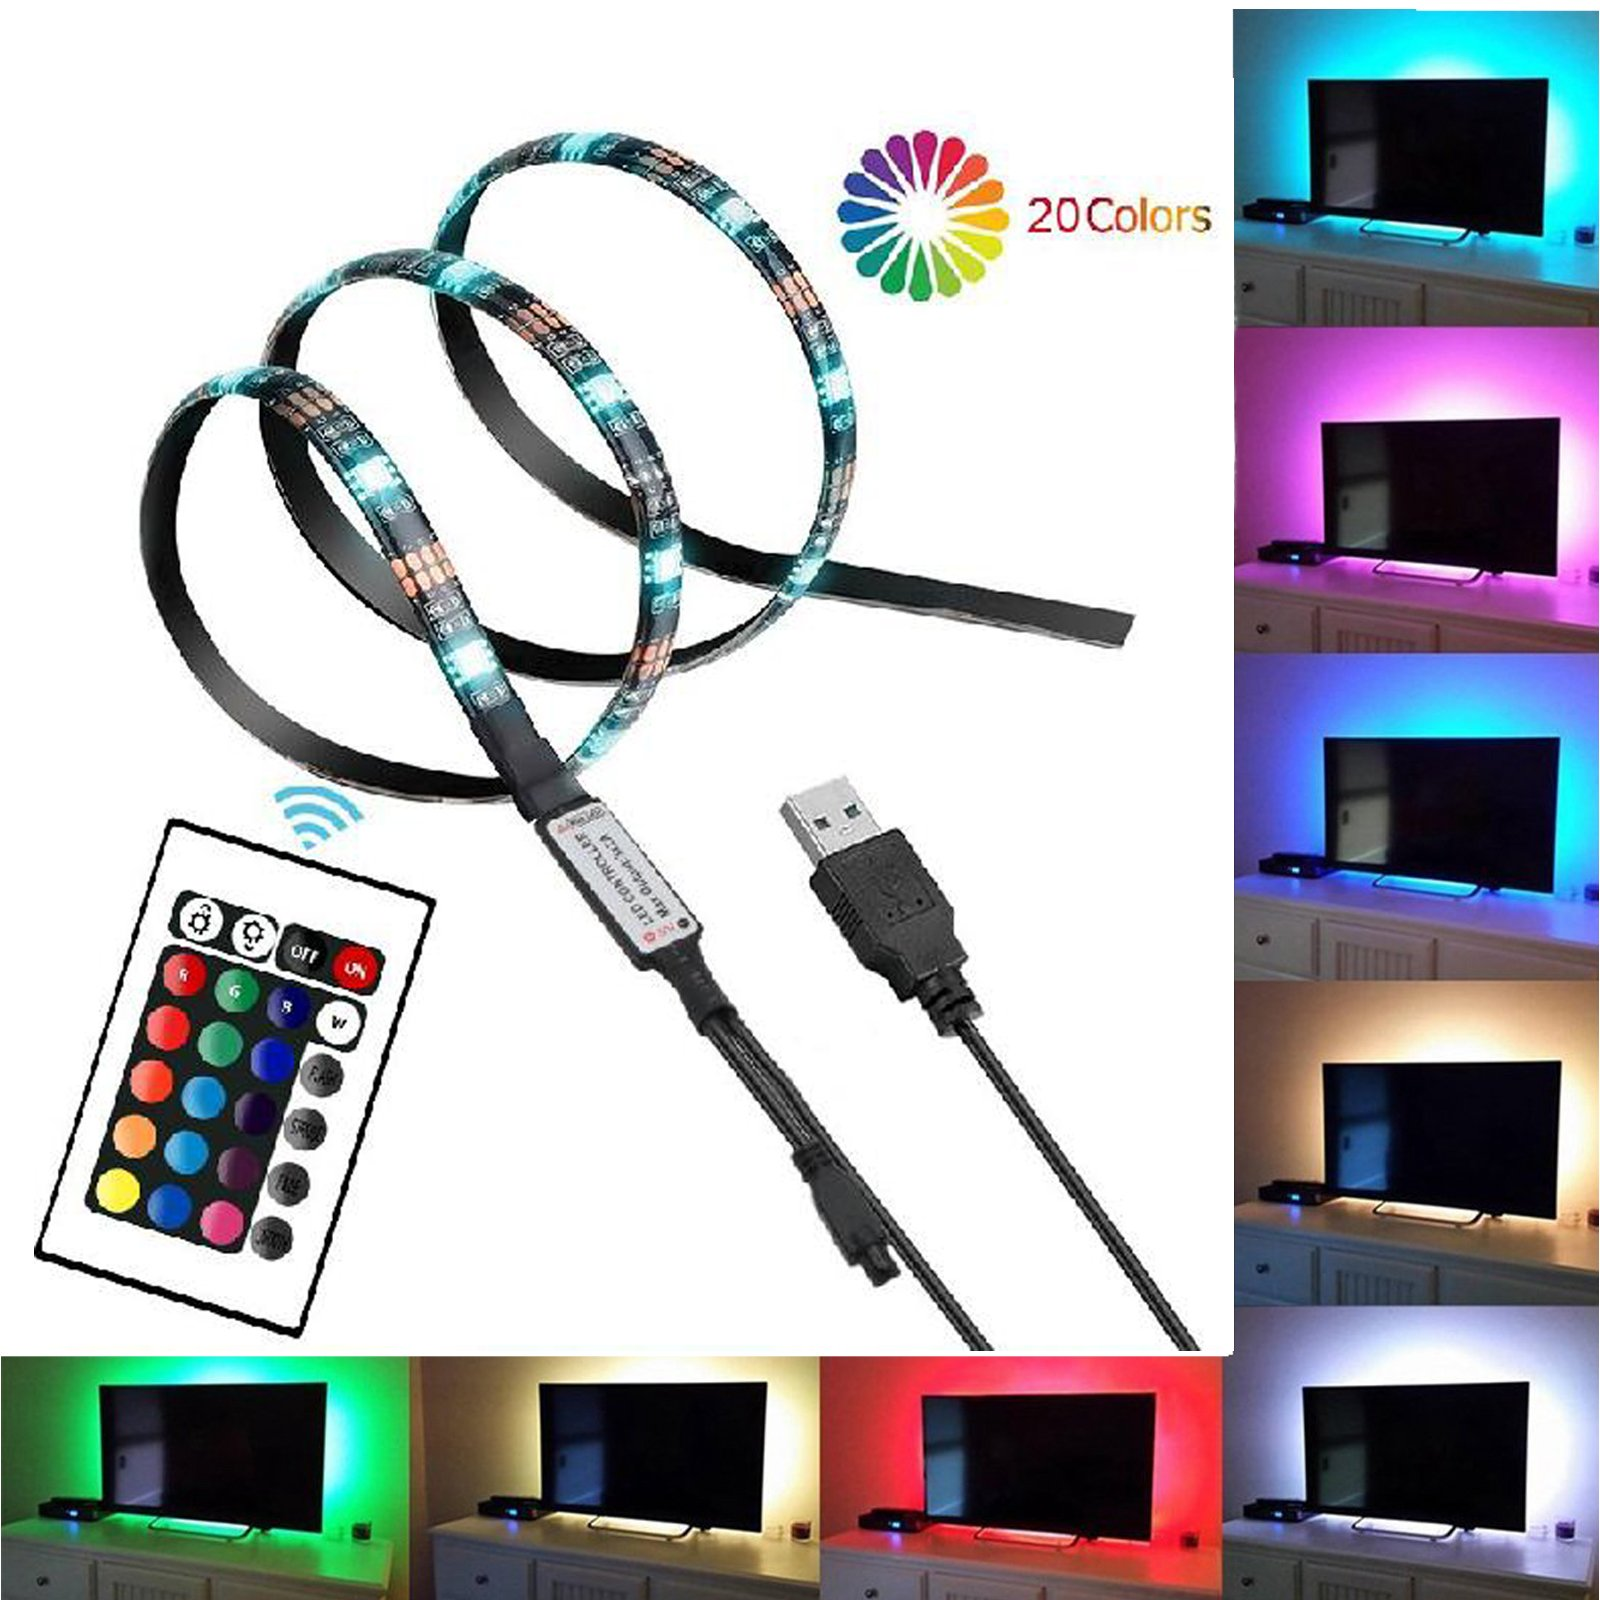 Smartdio Bias Backlight Strip for HDTV USB LED Multi Color RGB Lights Neon Accent Lighting Kit for Flat Screen TV LCD, Desktop PC (20 Multi Colors Reduce eye fatigue and increase image clarity)